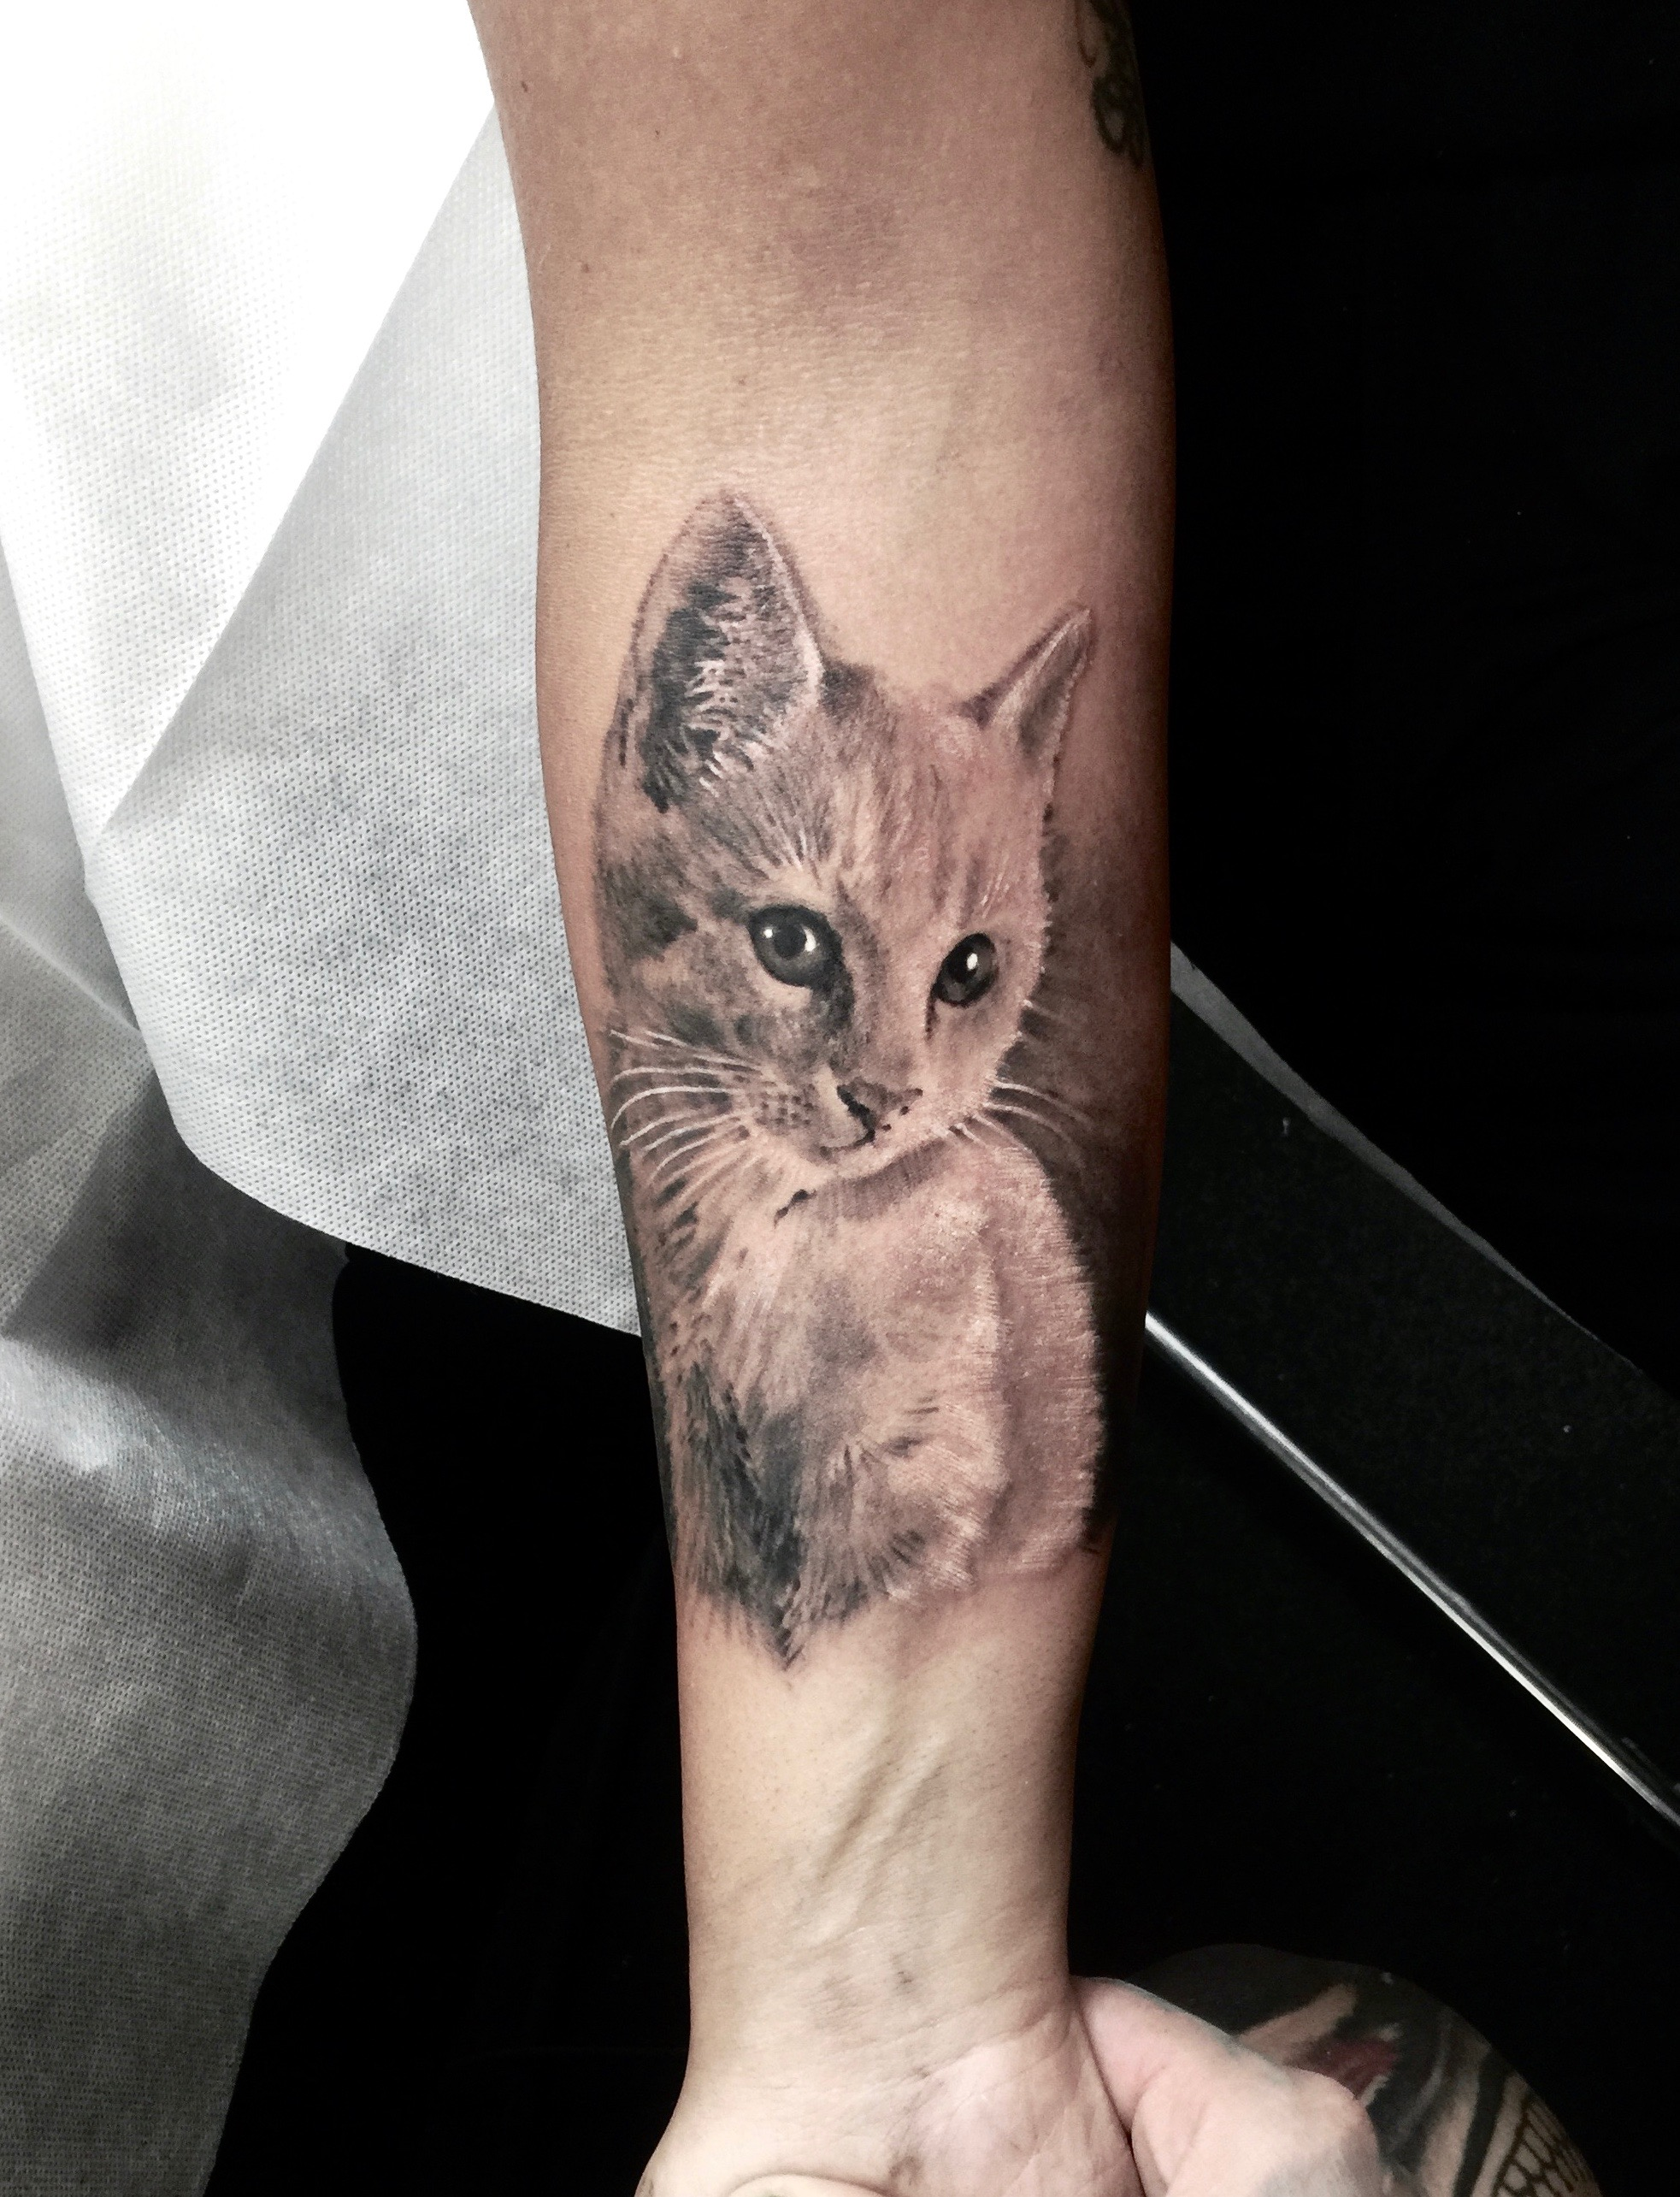 zhuo dan ting tattoo work cat tattoo卓丹婷纹身作品 猫咪纹身